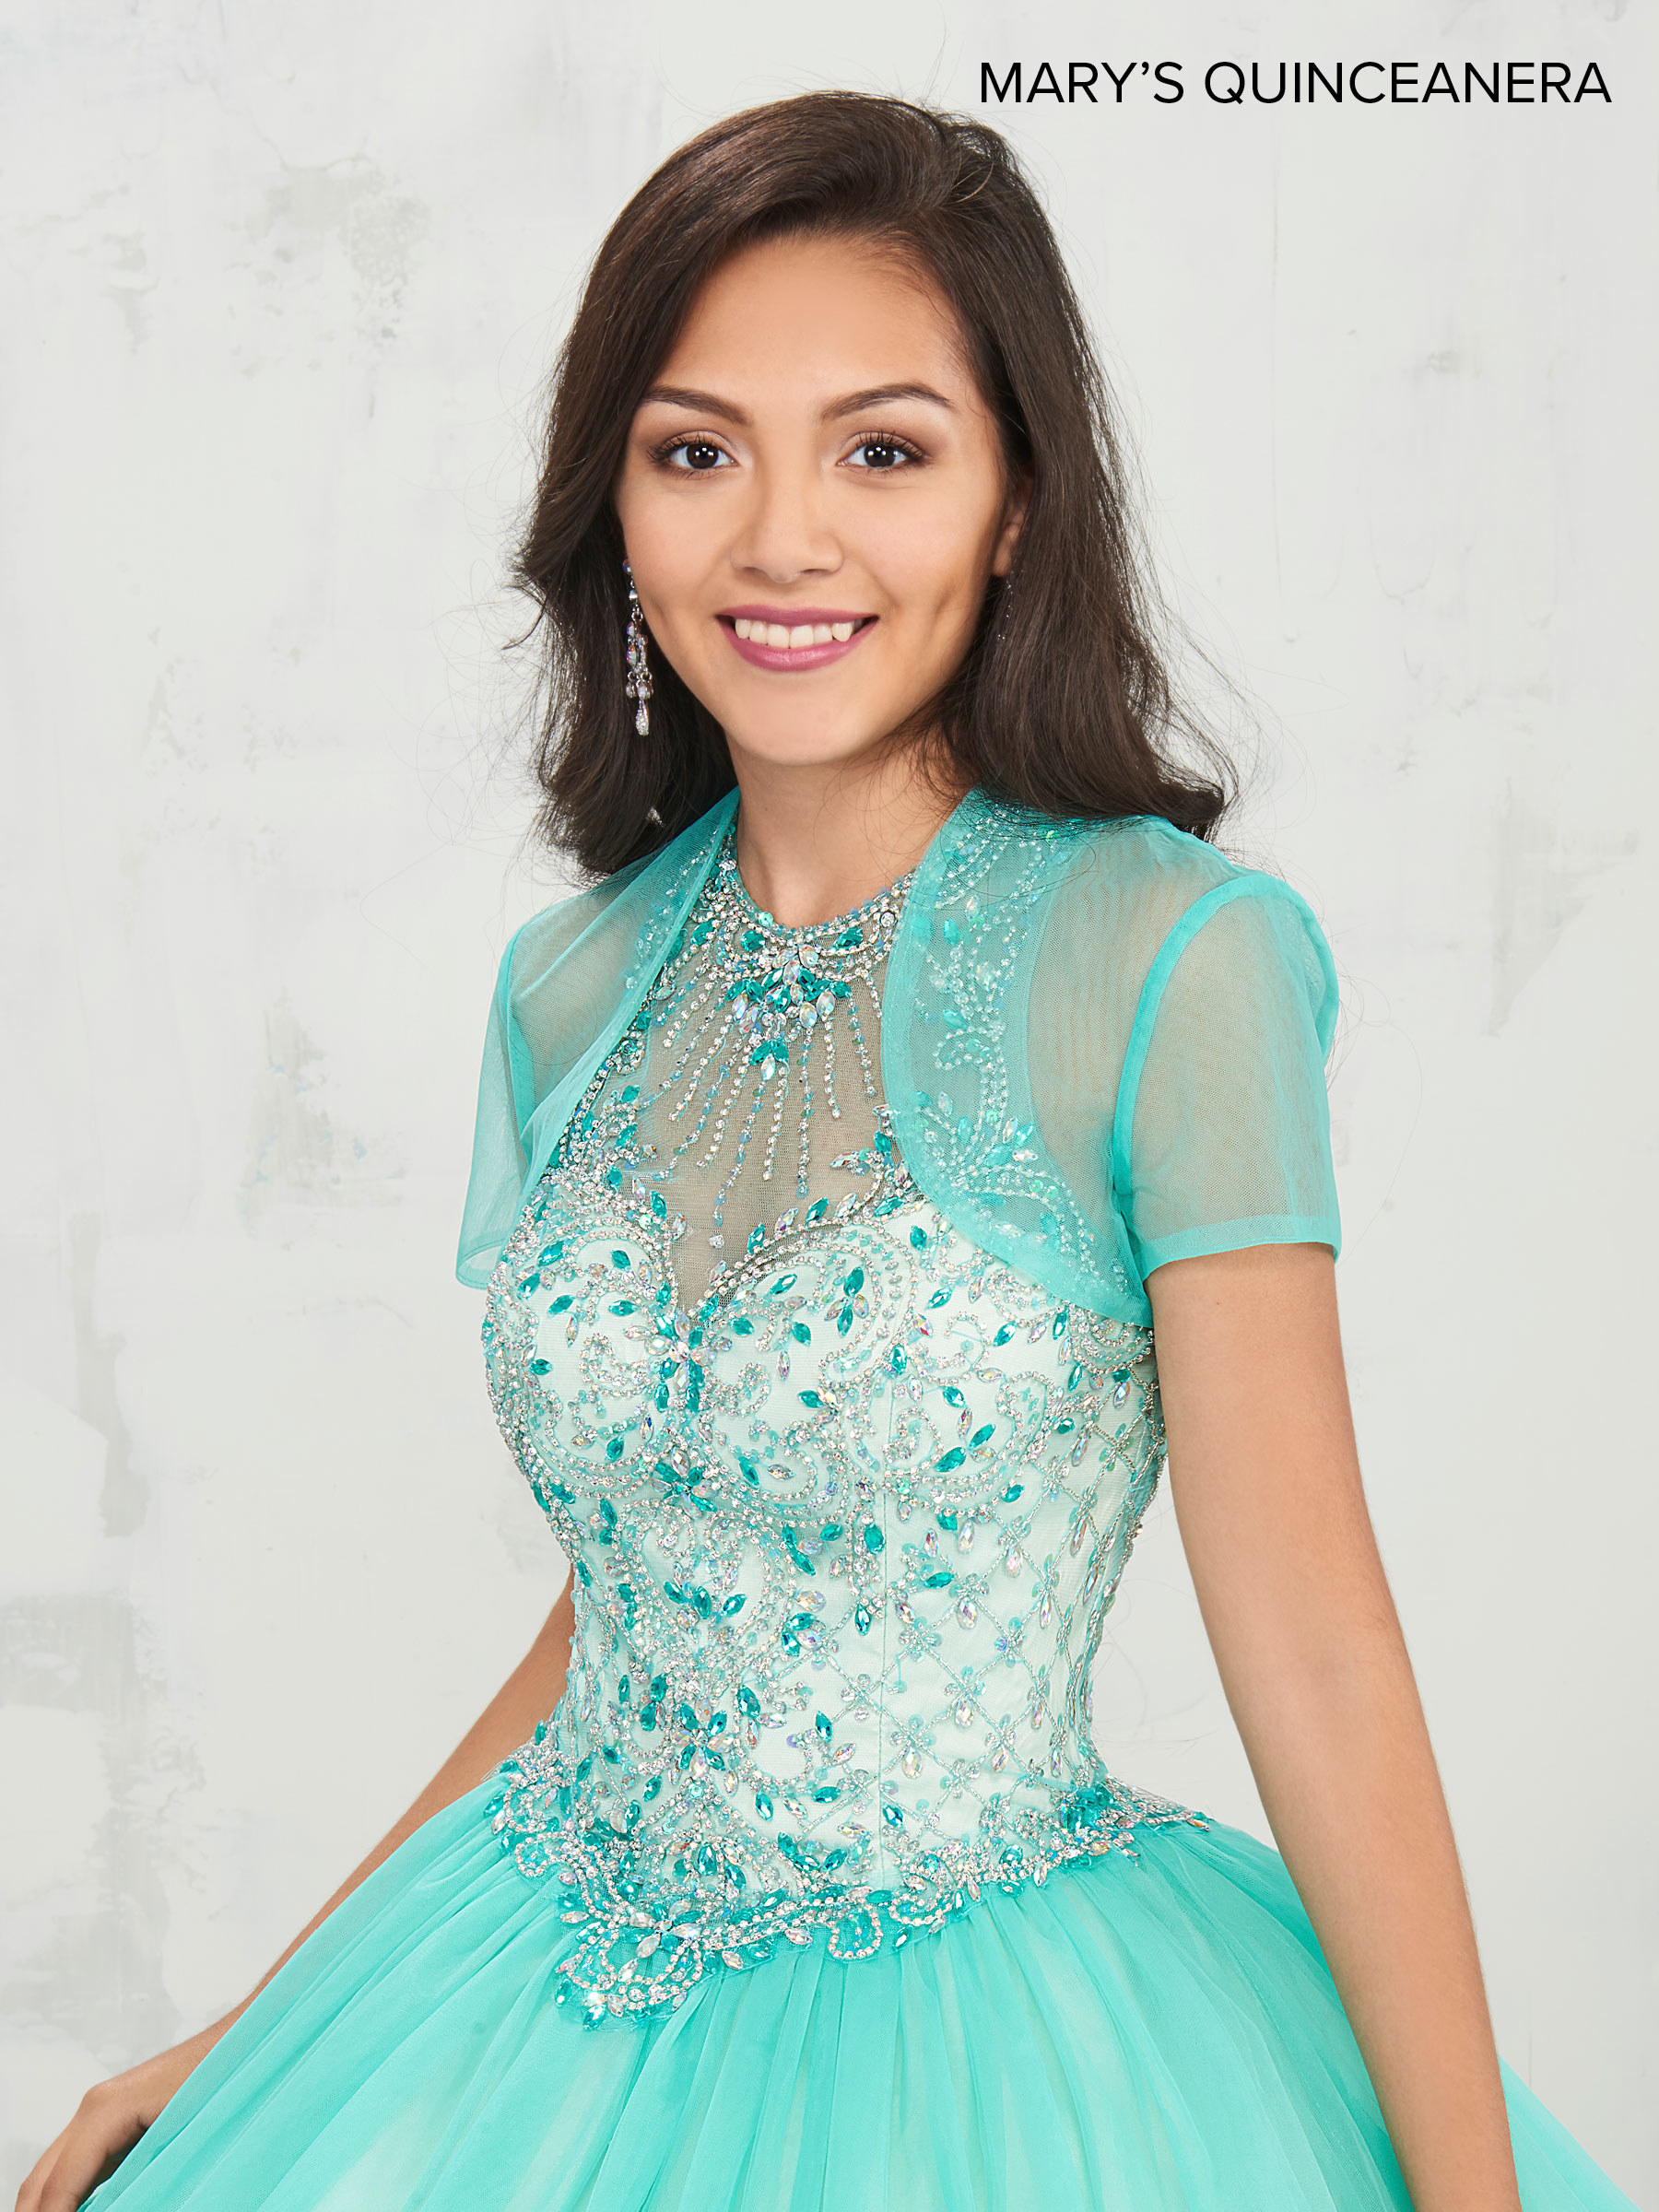 Marys Quinceanera Dresses | Mary's Quinceanera | Style - MQ1007